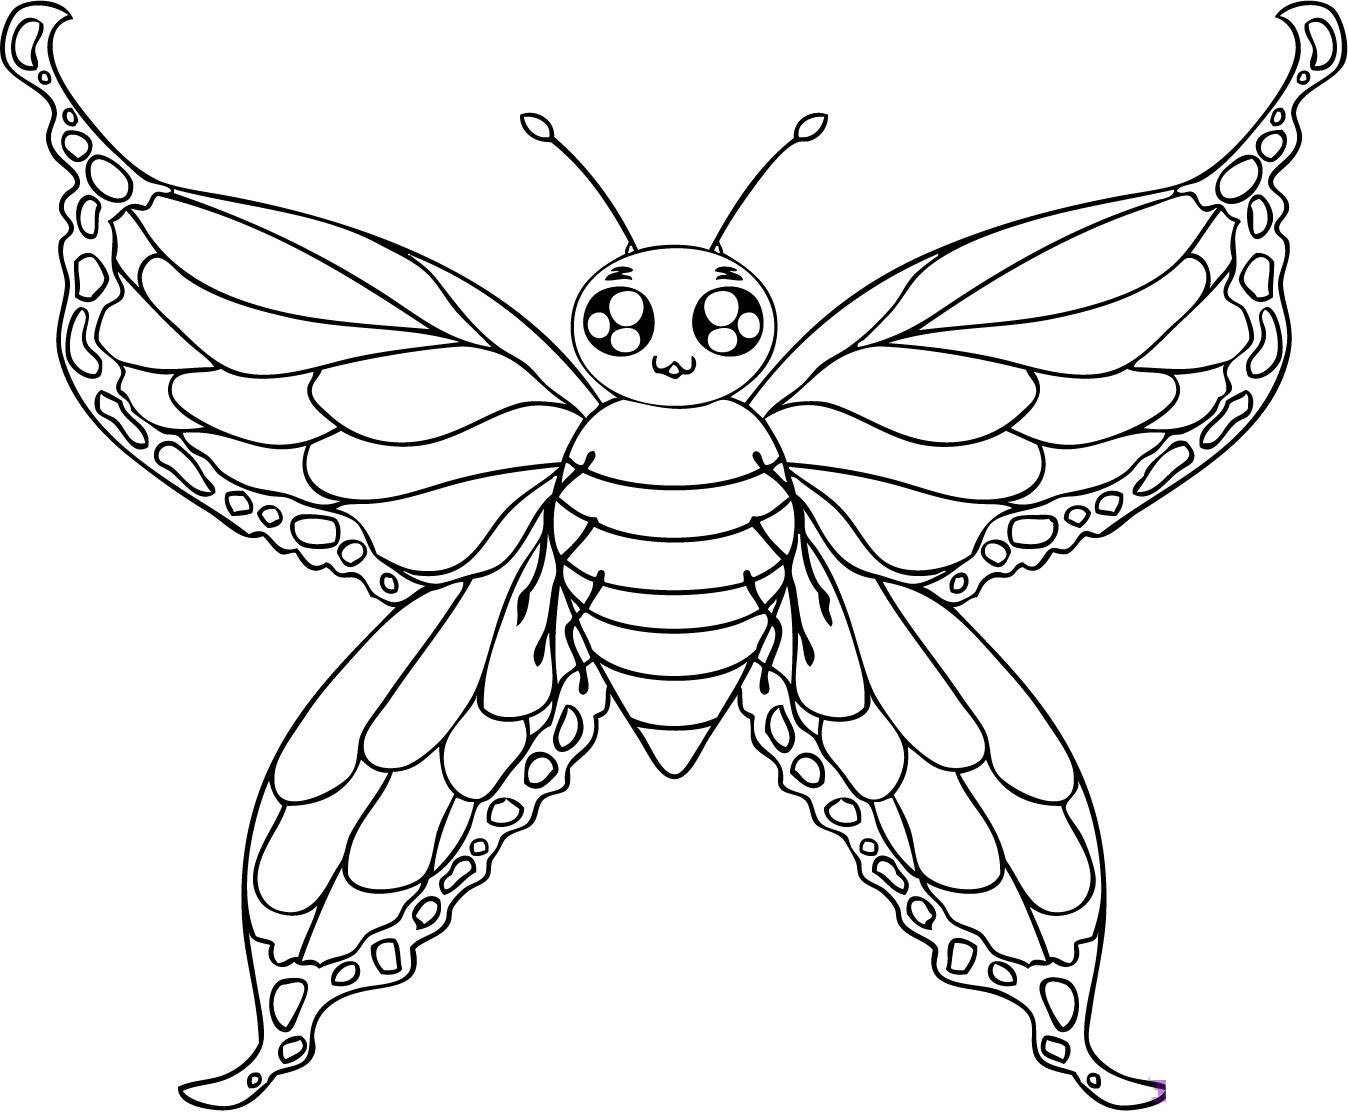 free coloring pages with butterfly - photo#32